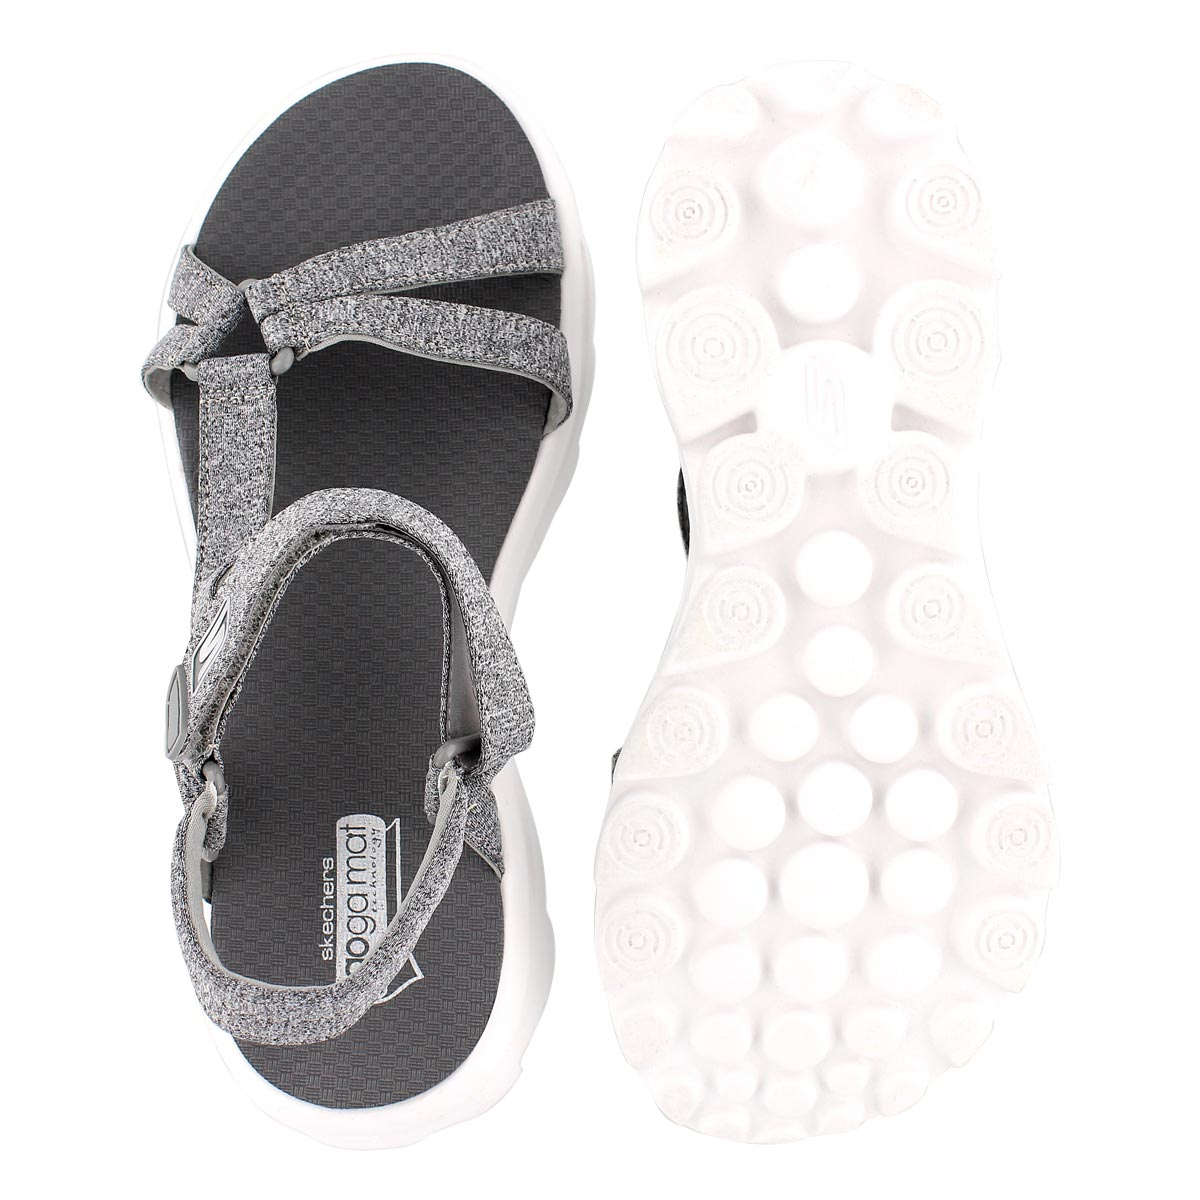 Lds River Walk grey sport sandal